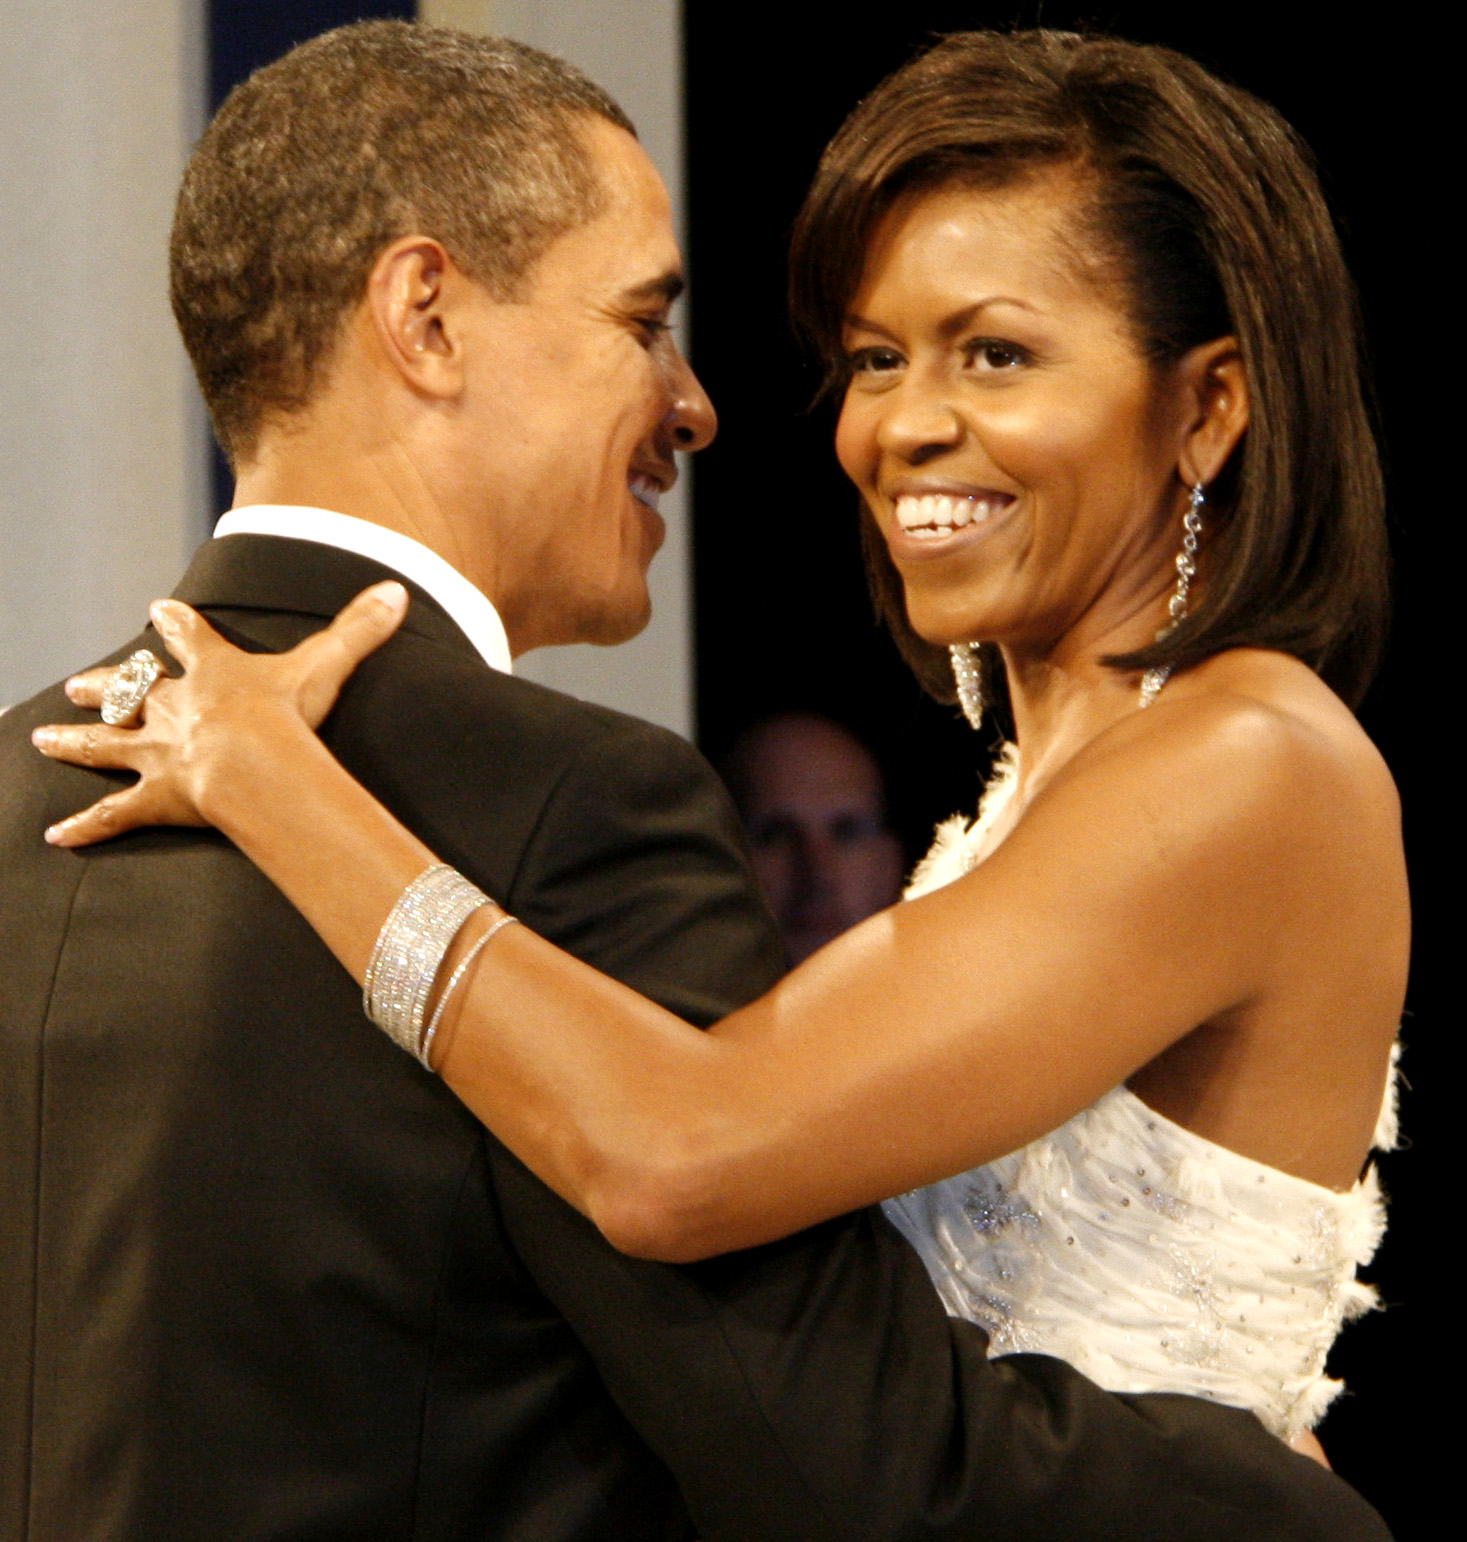 http://2.bp.blogspot.com/-V3HLRd3VHU0/TaCbKxlYPbI/AAAAAAAAAjM/4ndlExwhlqc/s1600/Barack_and_Michelle_Obama_at_the_Home_States_Ball.jpg